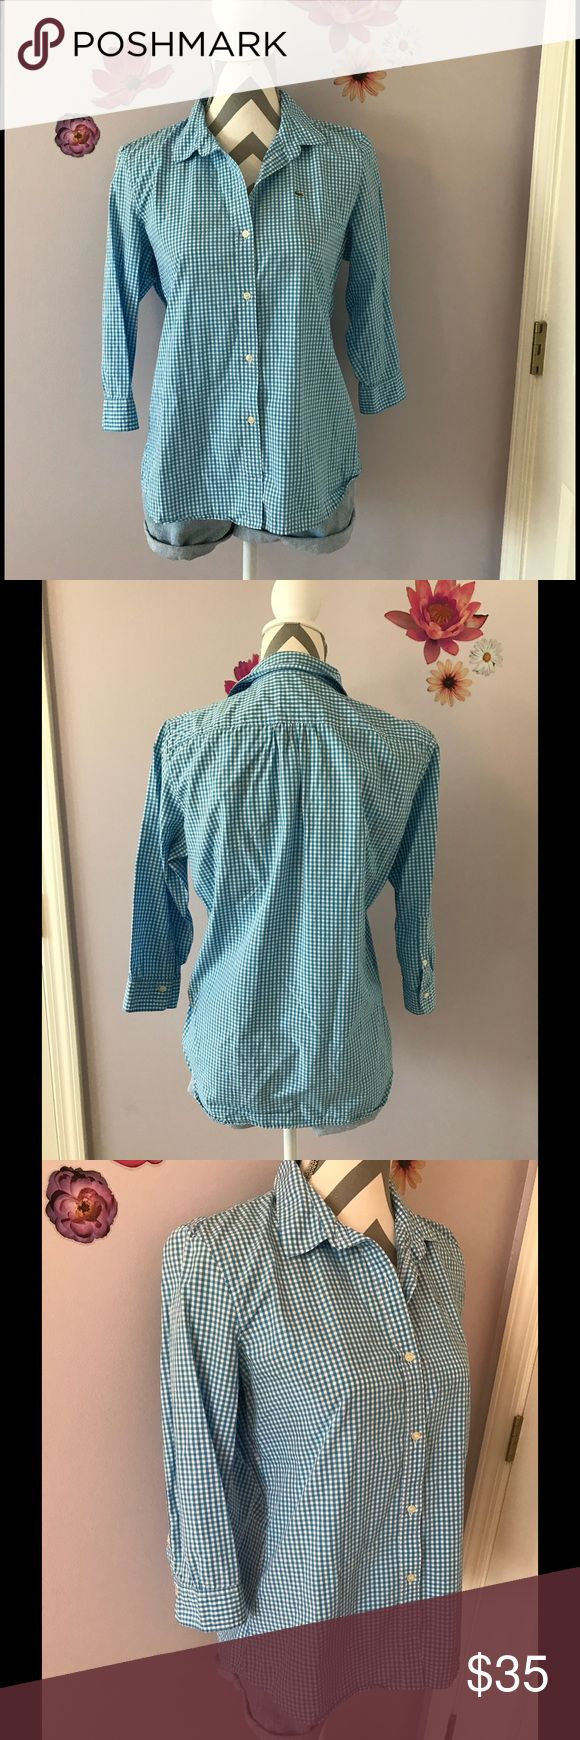 Lacoste Blue Checkered Shirt 3/4 sleeve blue and white checkered top by Lacoste. Size 42. According to Lacoste this is a size XL. Could also be worn smaller depending on how you like tops to fit. Lacoste Tops Button Down Shirts